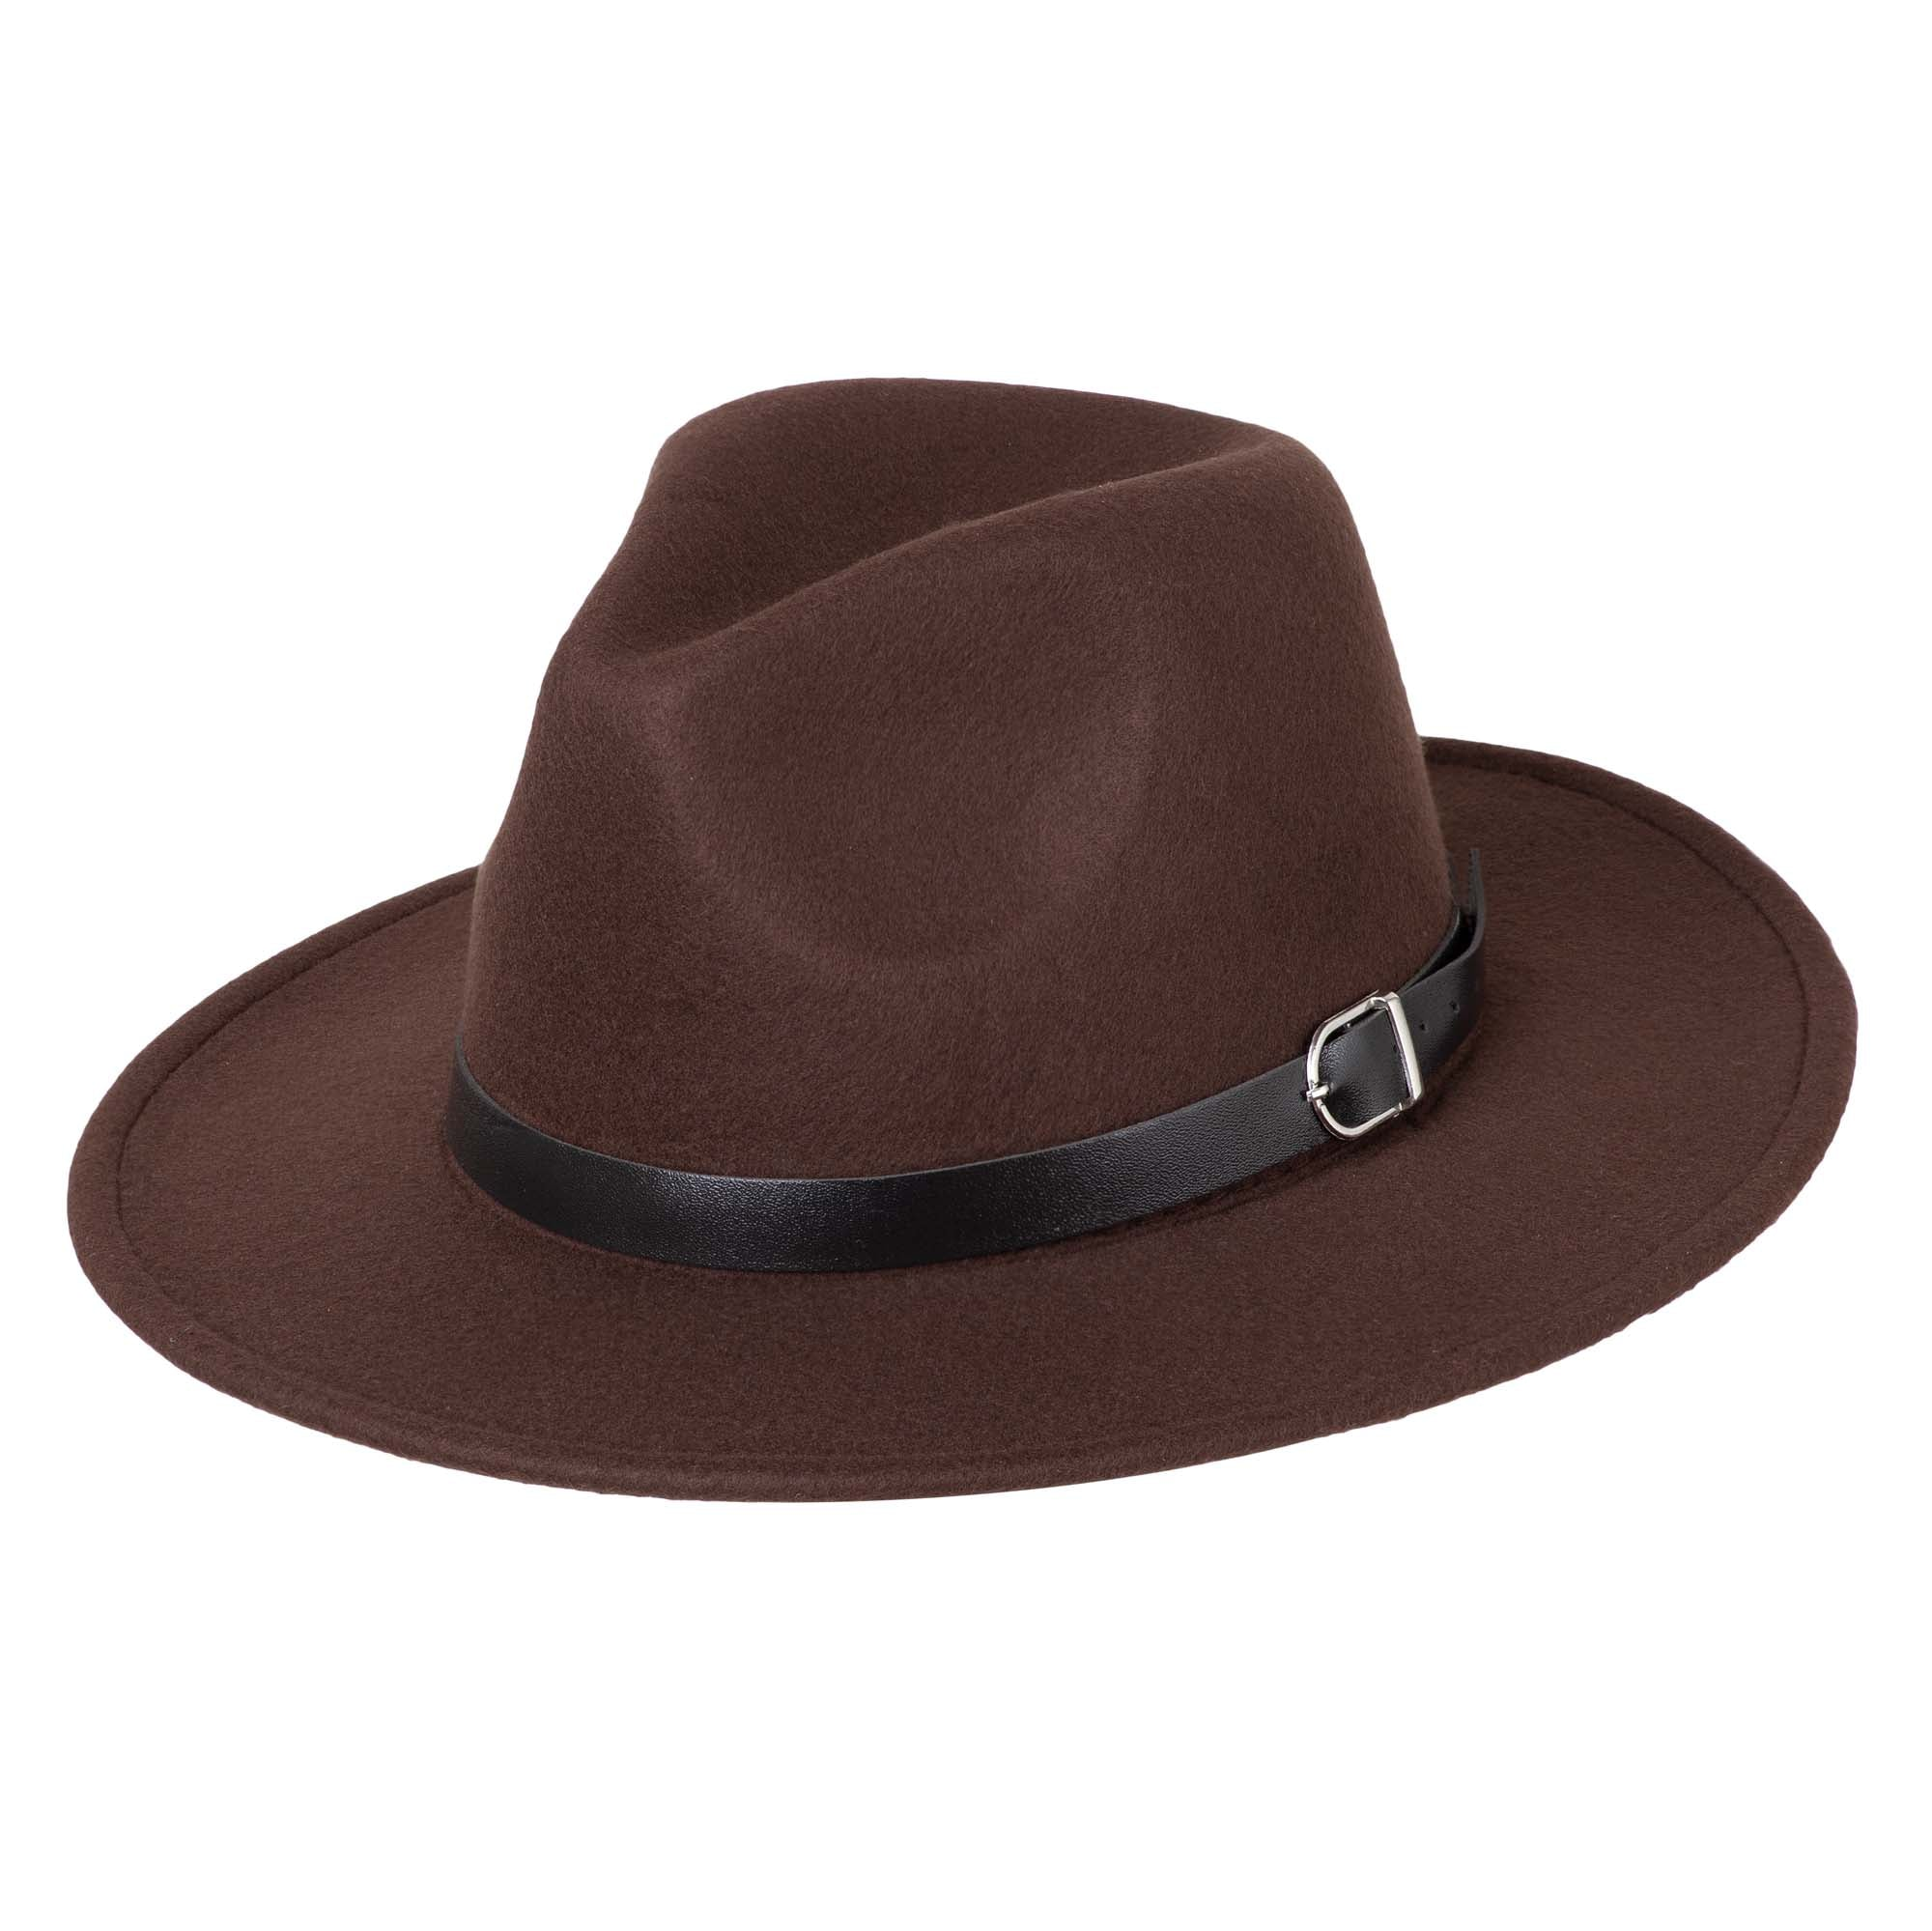 Felt Fedora - Chocolate